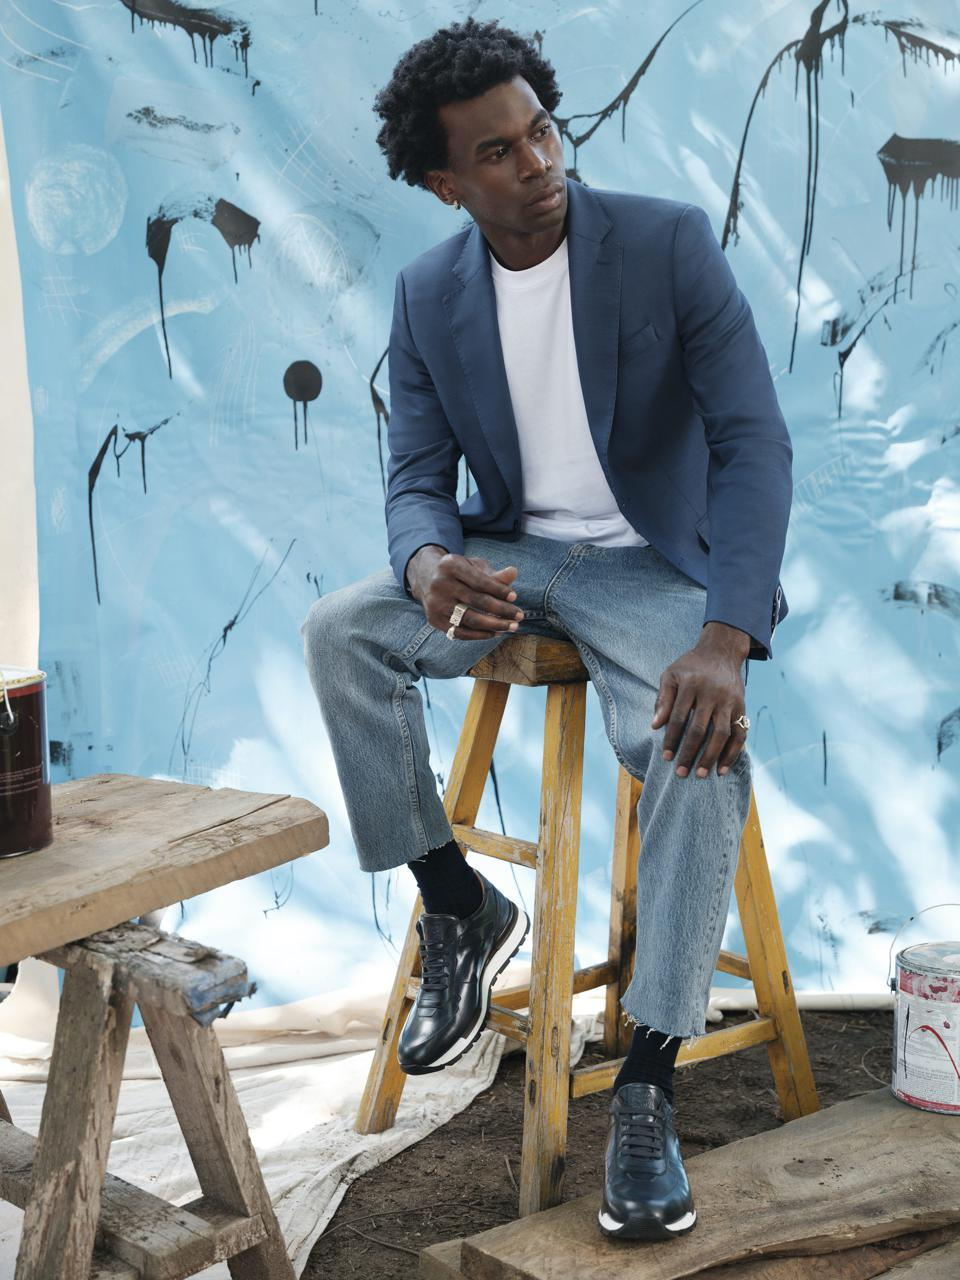 Cavier Coleman in front of his painting, ″Moving Water″